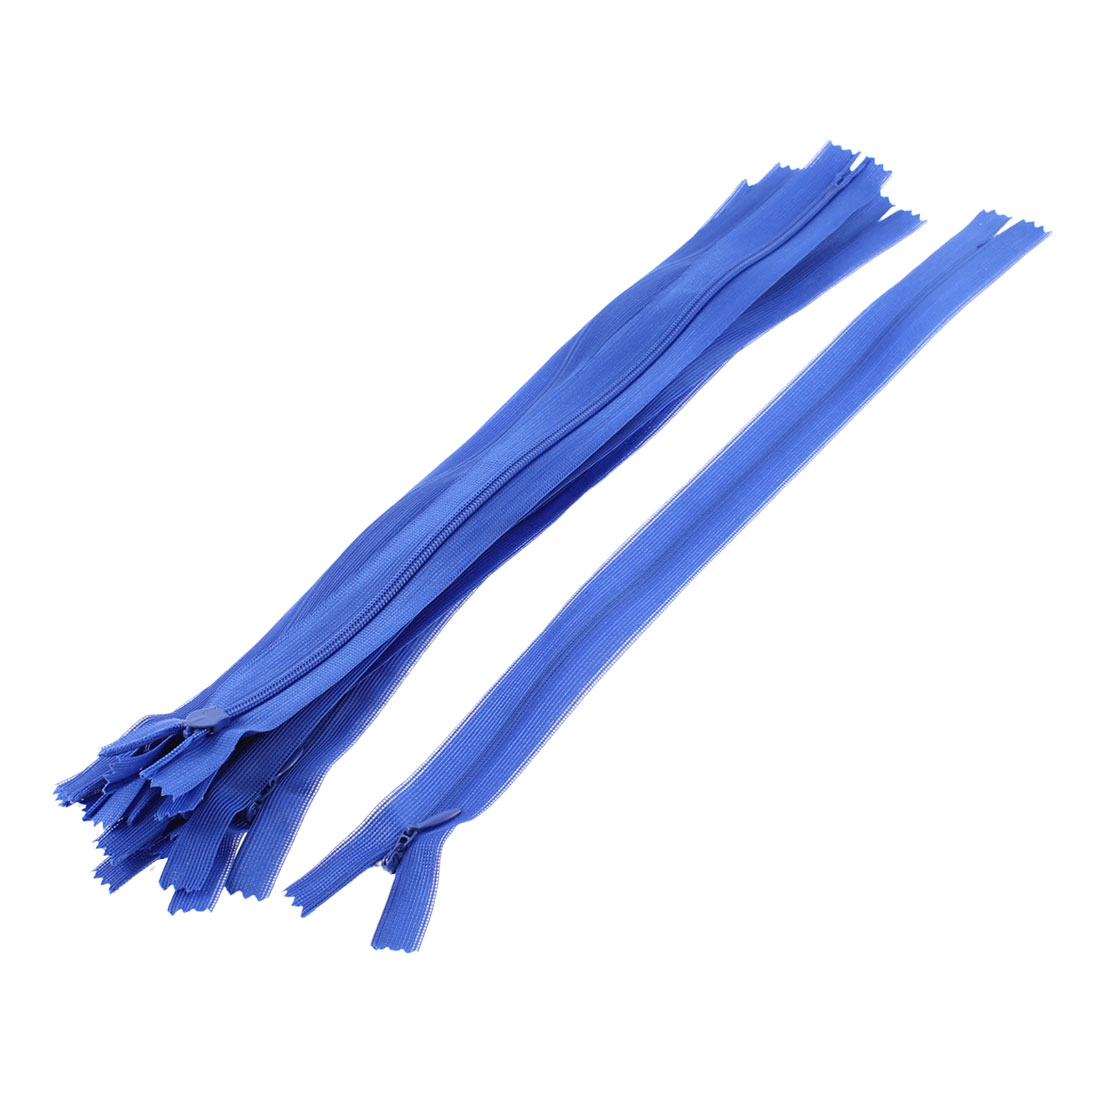 10 Pcs Blue 30cm Length Nylon Zippers Zips for Clothes